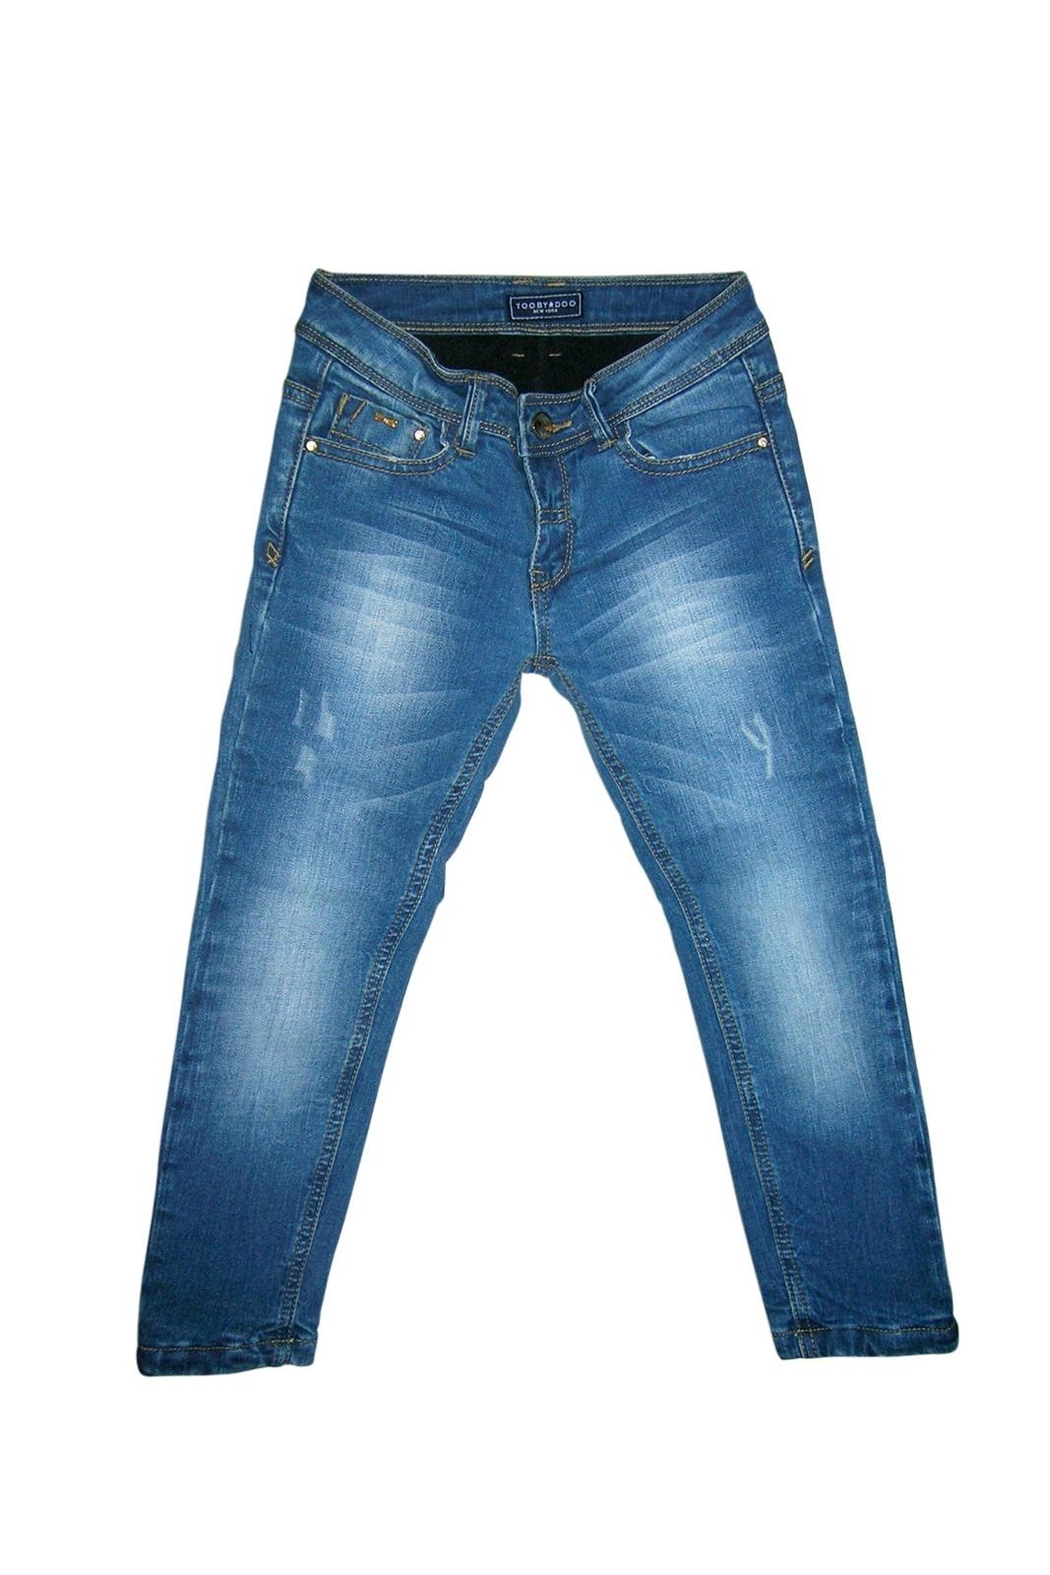 Toobydoo Fleece Lined Jeans - Main Image